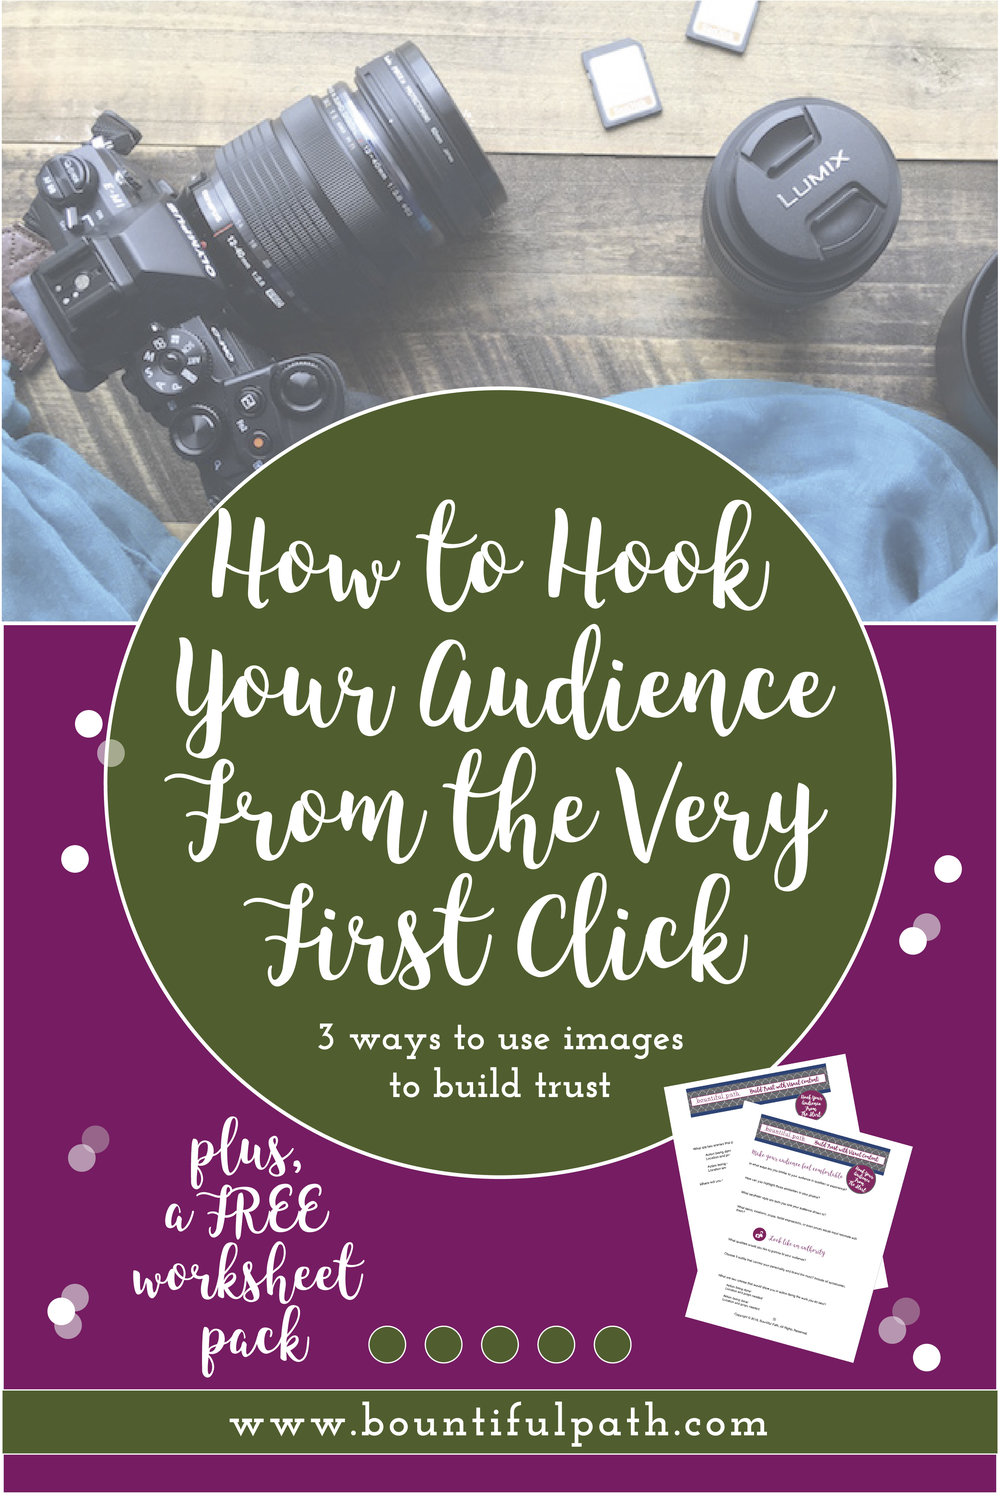 Wanna know how to engage your audience from their very first impression so that they keep coming back to your site? Learn the 3 ways to use images to hook your ideal customer right away. click through to bountiful path for the strategies and free worksheets.